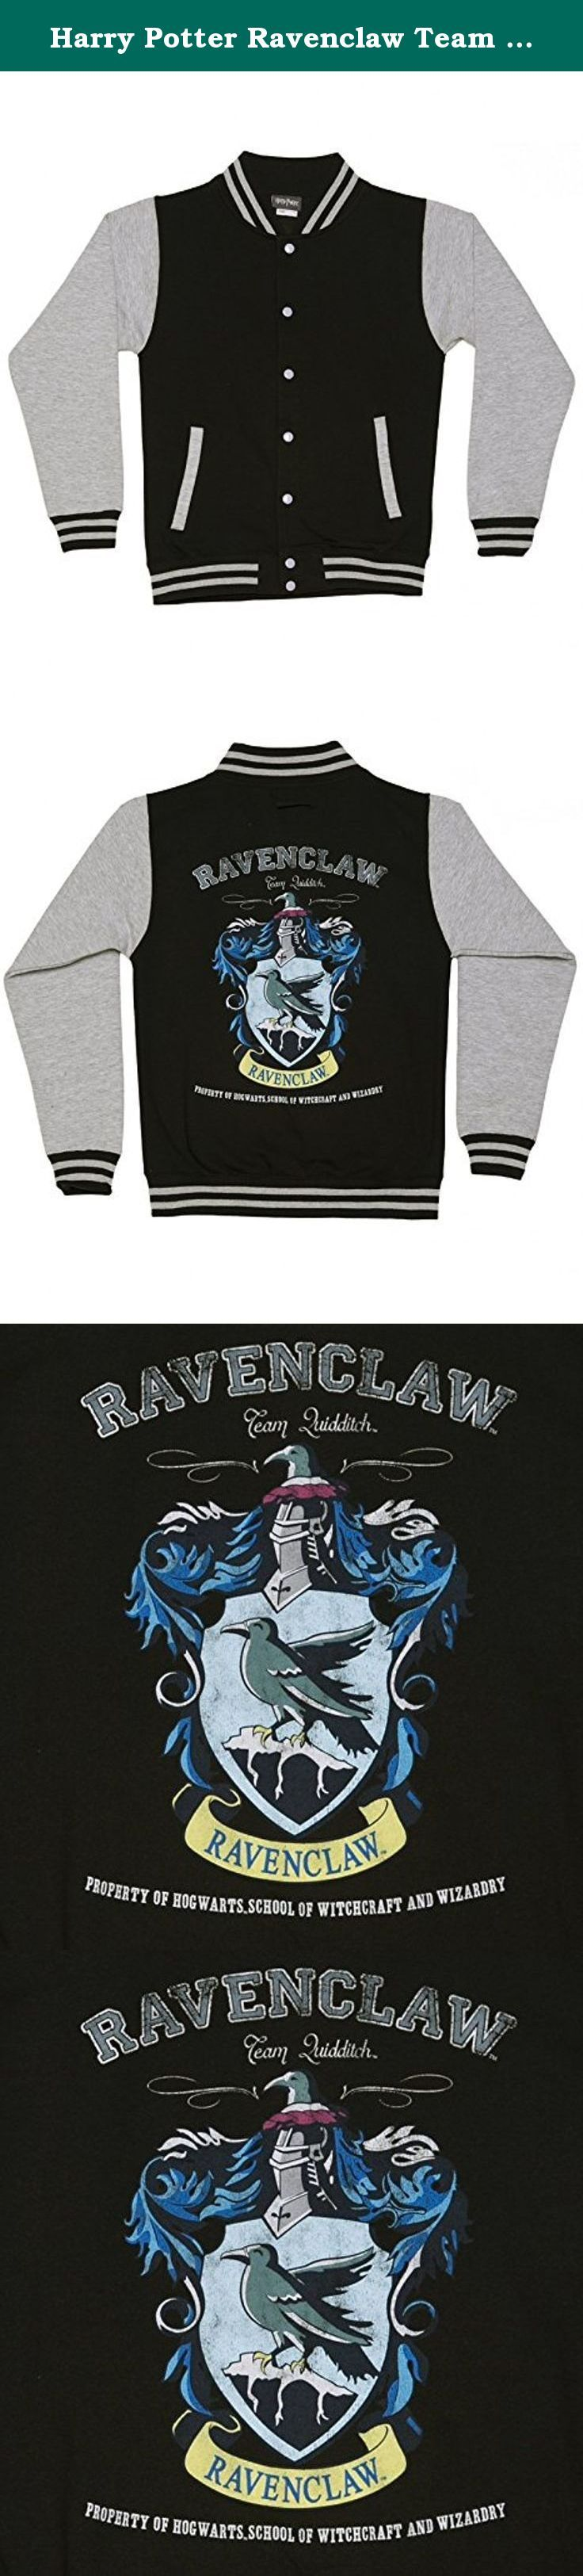 Harry Potter Ravenclaw Team Quidditch Ladies Varsity Jacket, Black/Charcoal (Small). - Ladies Black Harry Potter Ravenclaw Team Quidditch Varsity Jacket - Composed of a medium weight 80% Cotton/ 20% Polyester blend - Comes with contrast studs to fasten and a pocket with a small opening for an ear phone cord feed and hidden ear phone loops - Please check our custom size chart for your perfect fit - Exclusive to TruffleShuffle - 100% official merchandise. This amazing, magical, varsity…